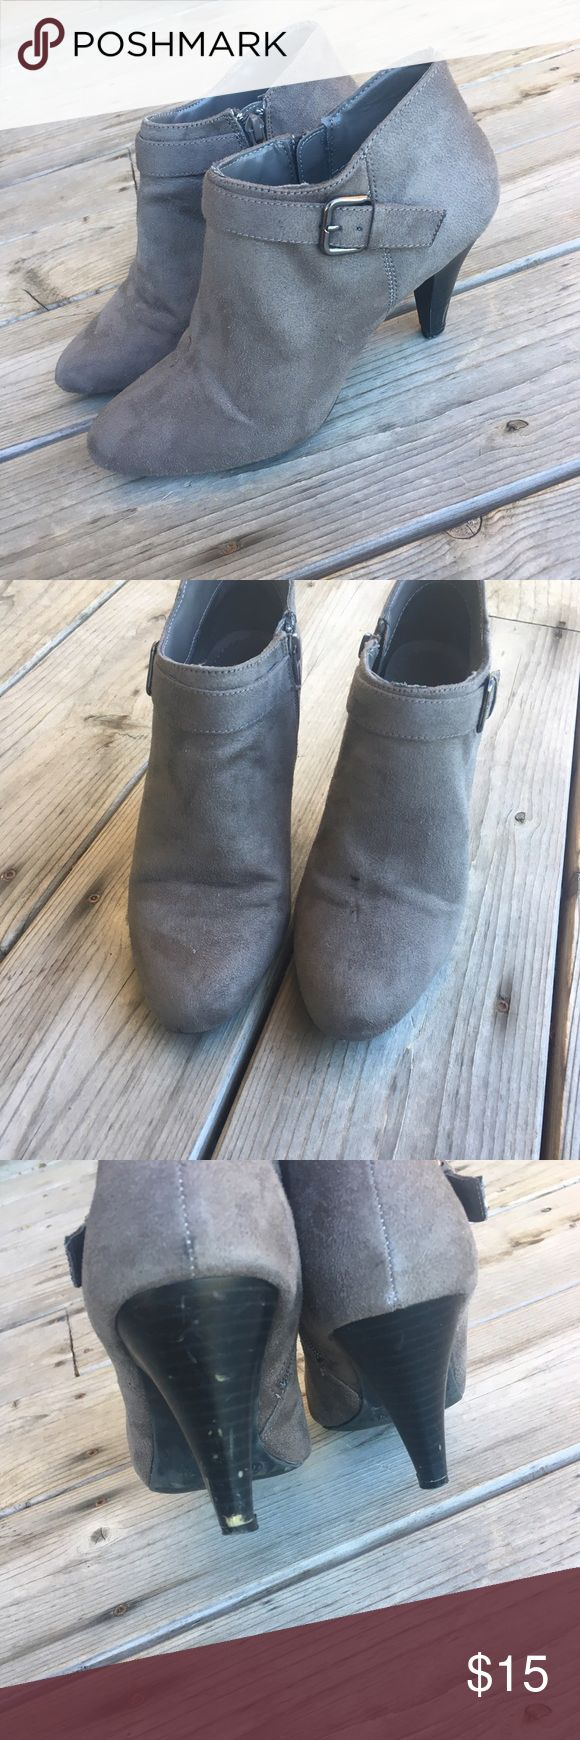 Grey Booties Grey faux suede booties. Silver buckle detail. Heeled. Worn once. Minor flaw on back of heel, easy fix & tiny spot on front pictured. Otherwise like new! Brand is Fioni. • No Trades • Price is firm unless bundled • 15% off of bundles of 3 or more • White House Black Market Shoes Ankle Boots & Booties